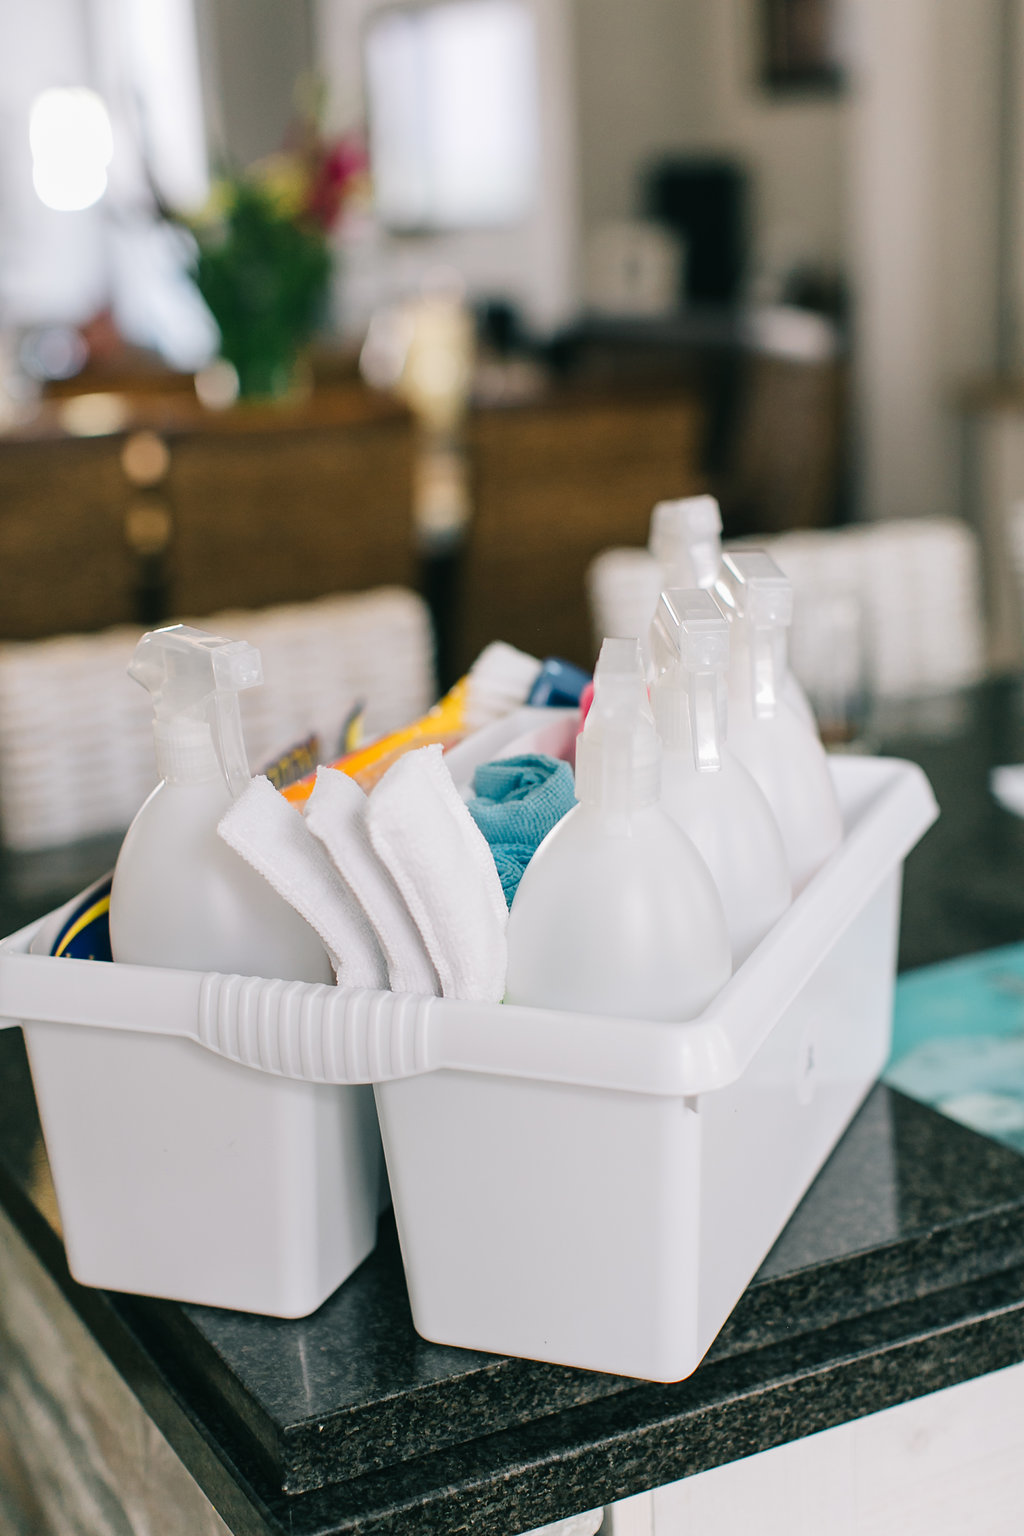 Steps for training your own housekeeper